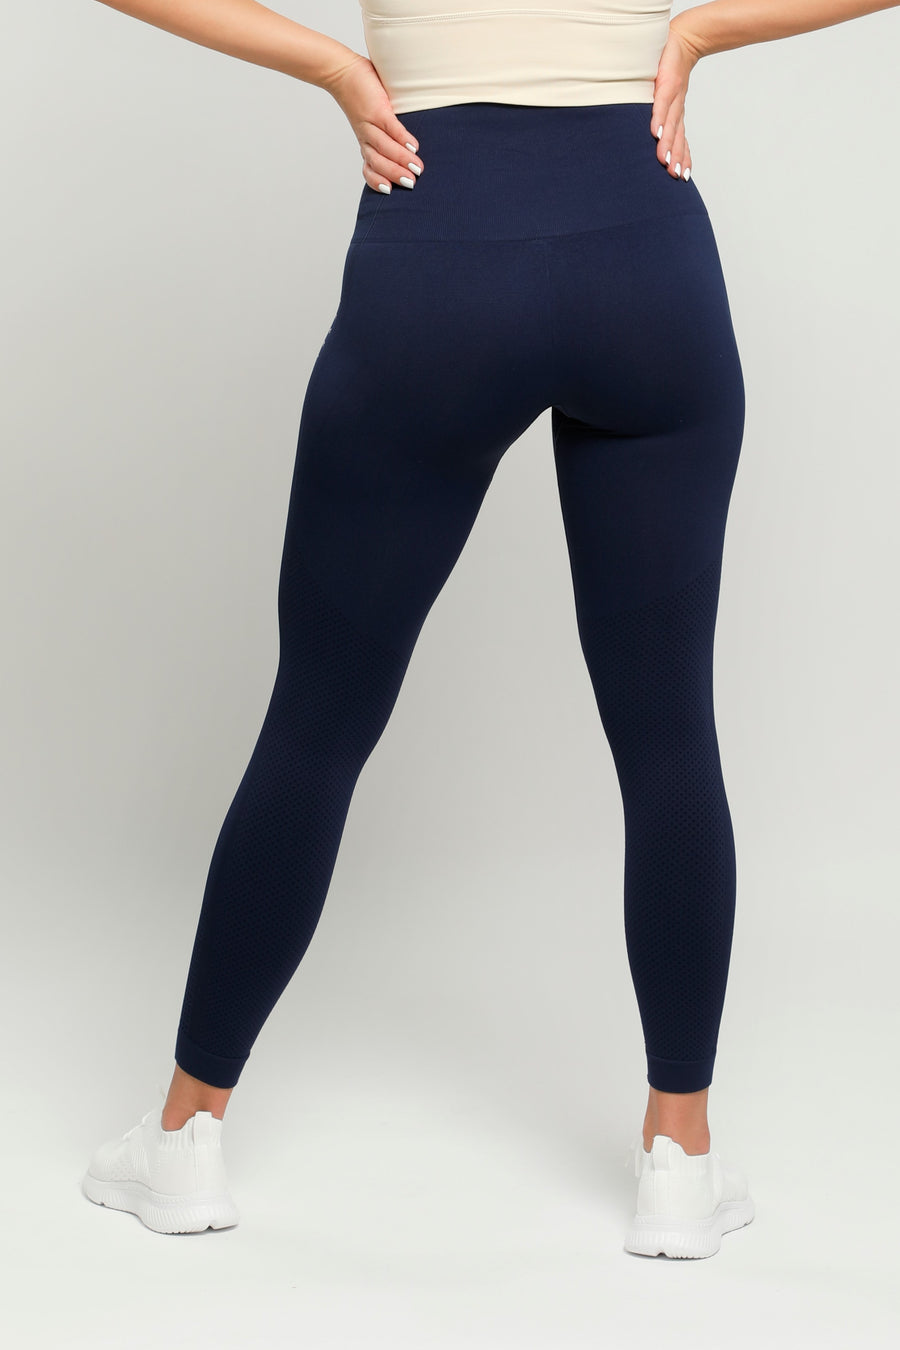 Navy Flex High Waisted Leggings